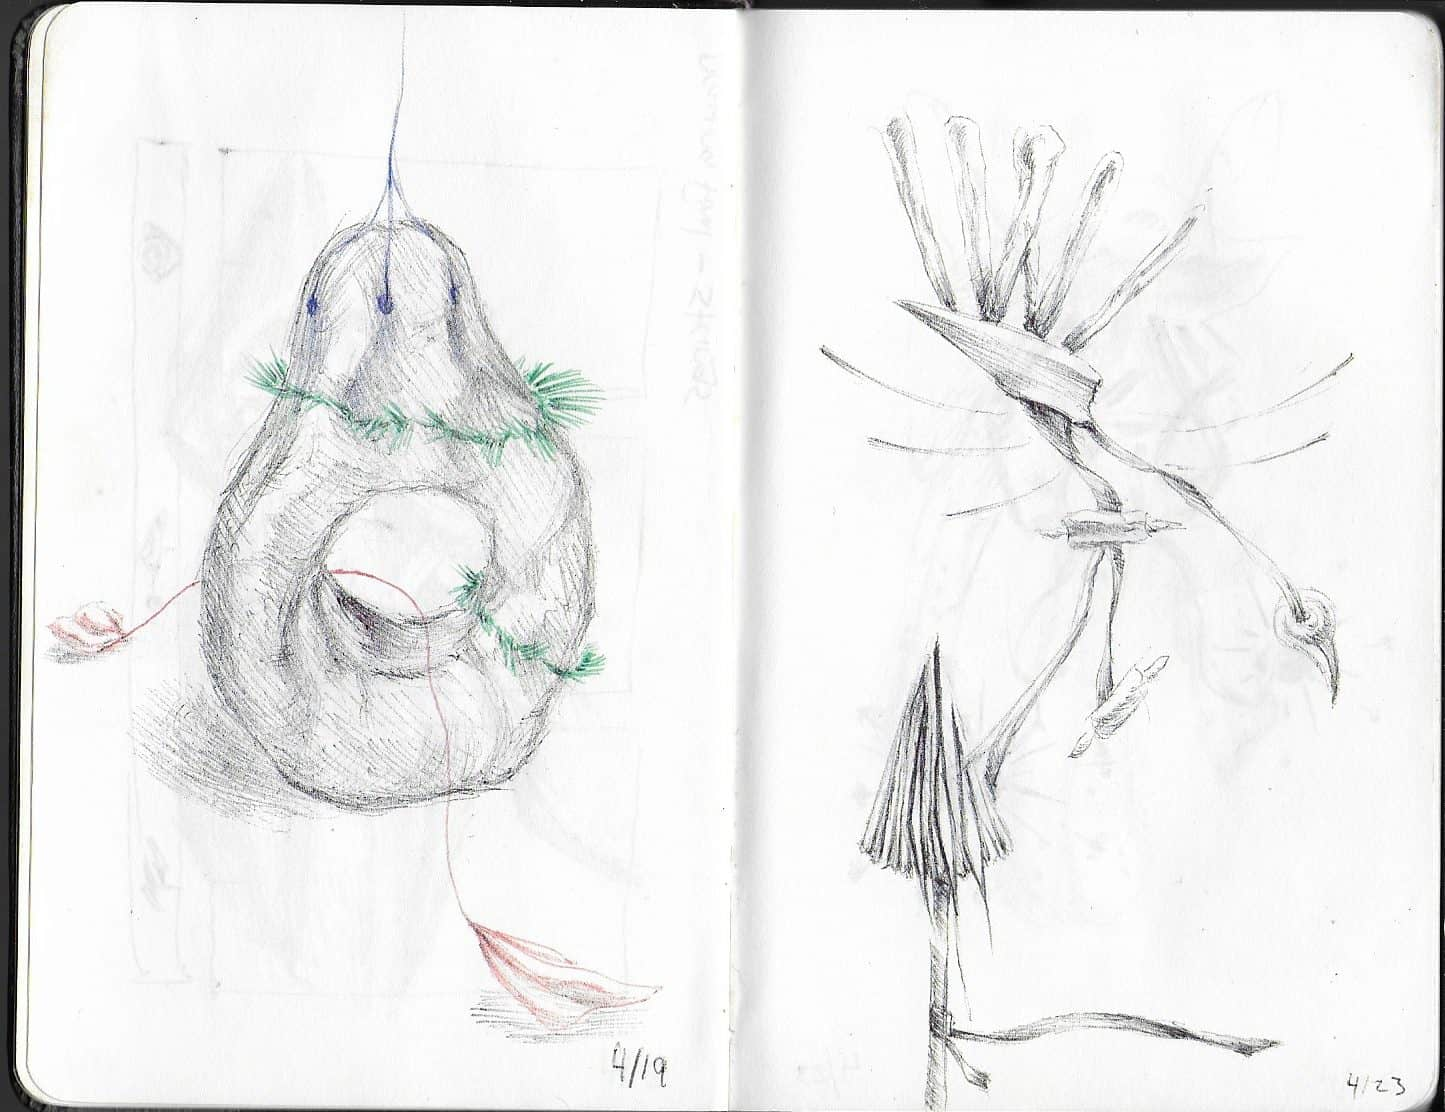 drawing of natural forms, that seem to have been tied together and arranged. On the left page they have been turned into an ornament, on the right a birdlike creature